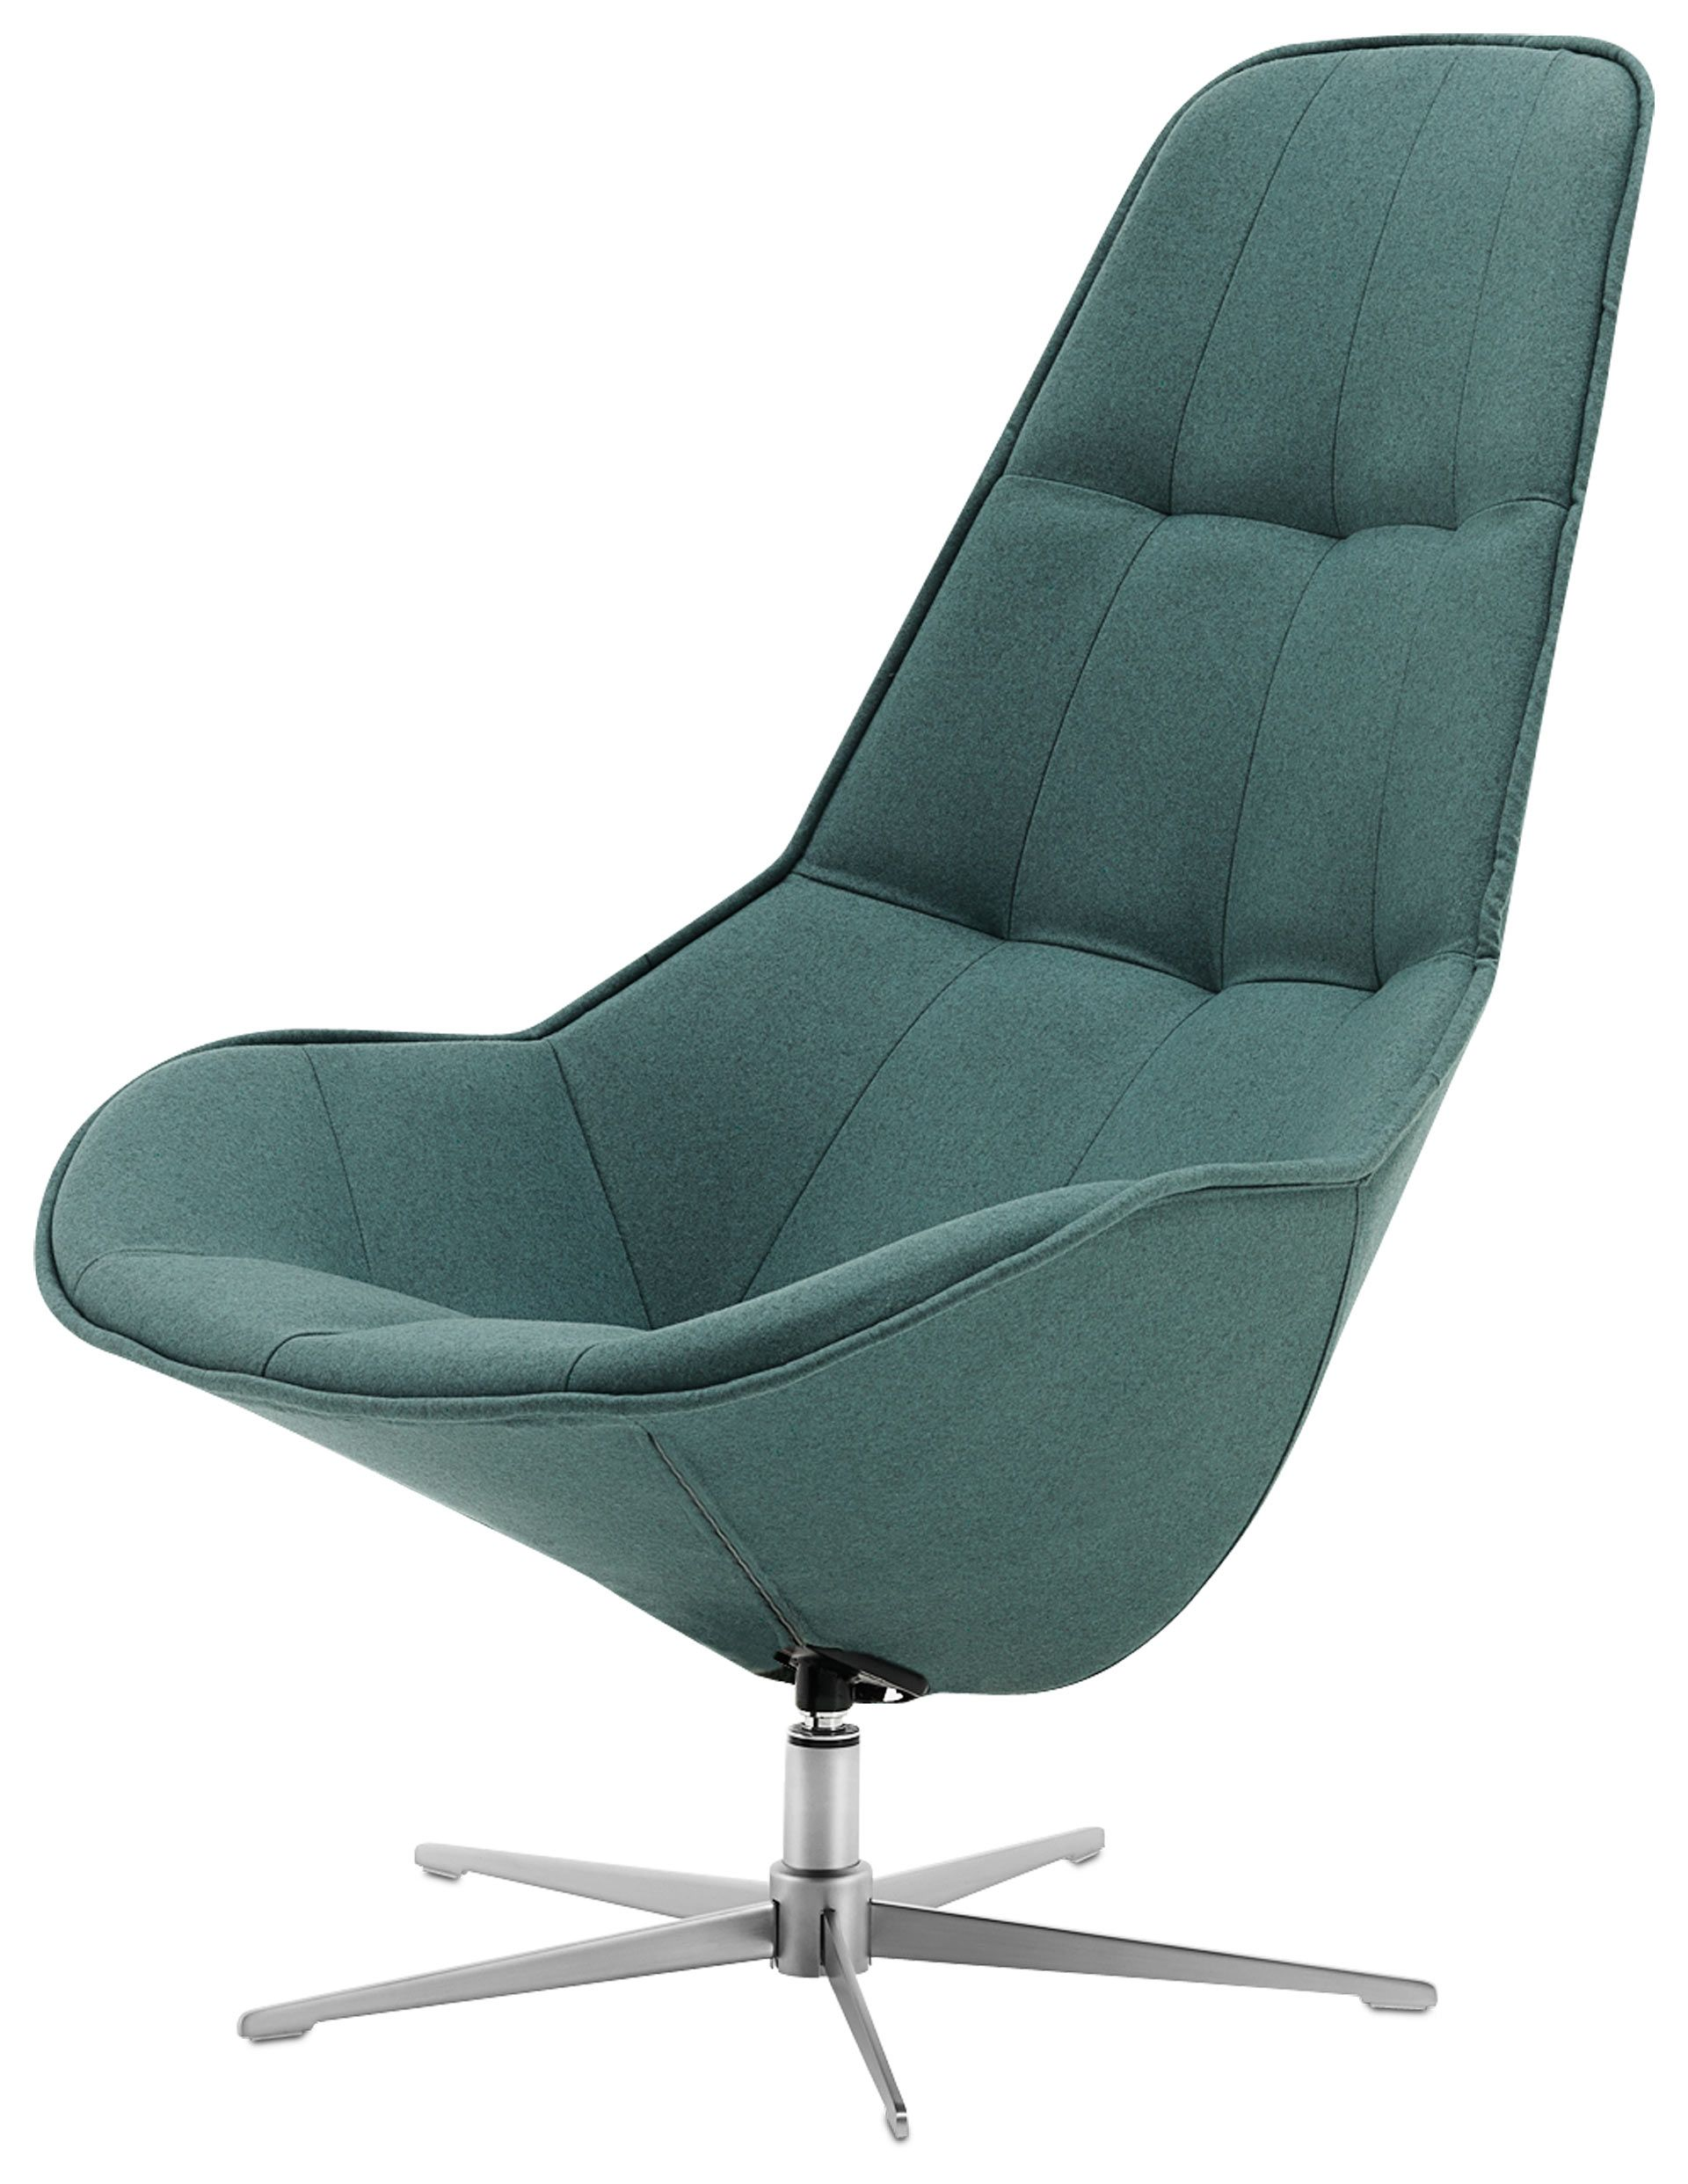 Modern Armchairs - Contemporary Armchairs - BoConcept | Furniture I ...